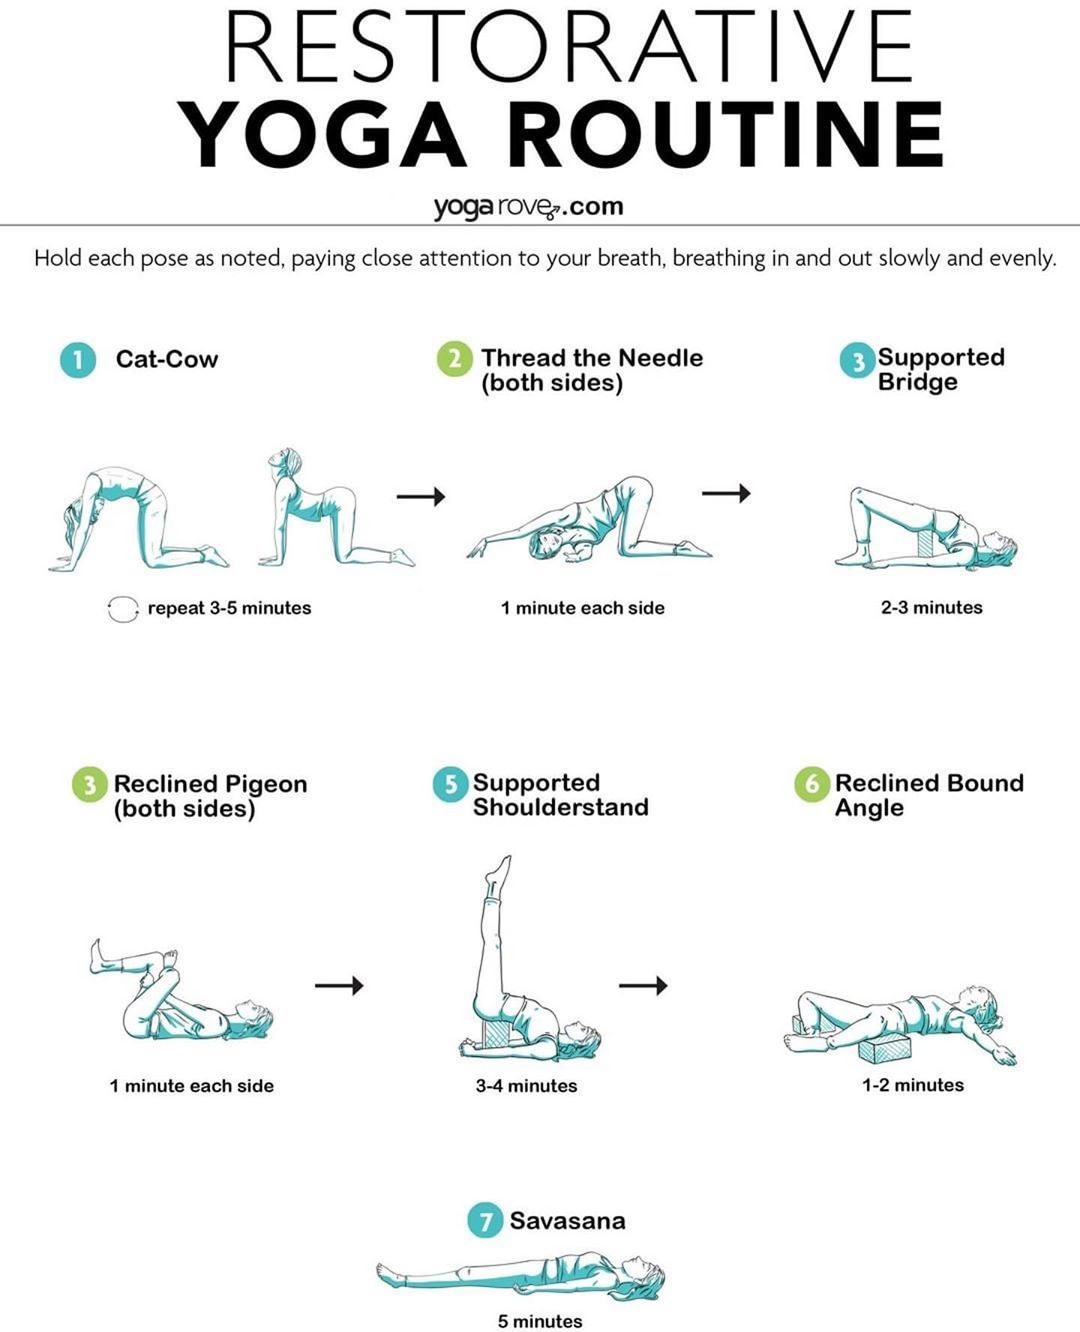 Yoga For The Non Flexible On Instagram Are You Feeling Fatigued Tired Or Looking For Some In 2020 Restorative Yoga Restorative Yoga Sequence Restorative Yoga Poses